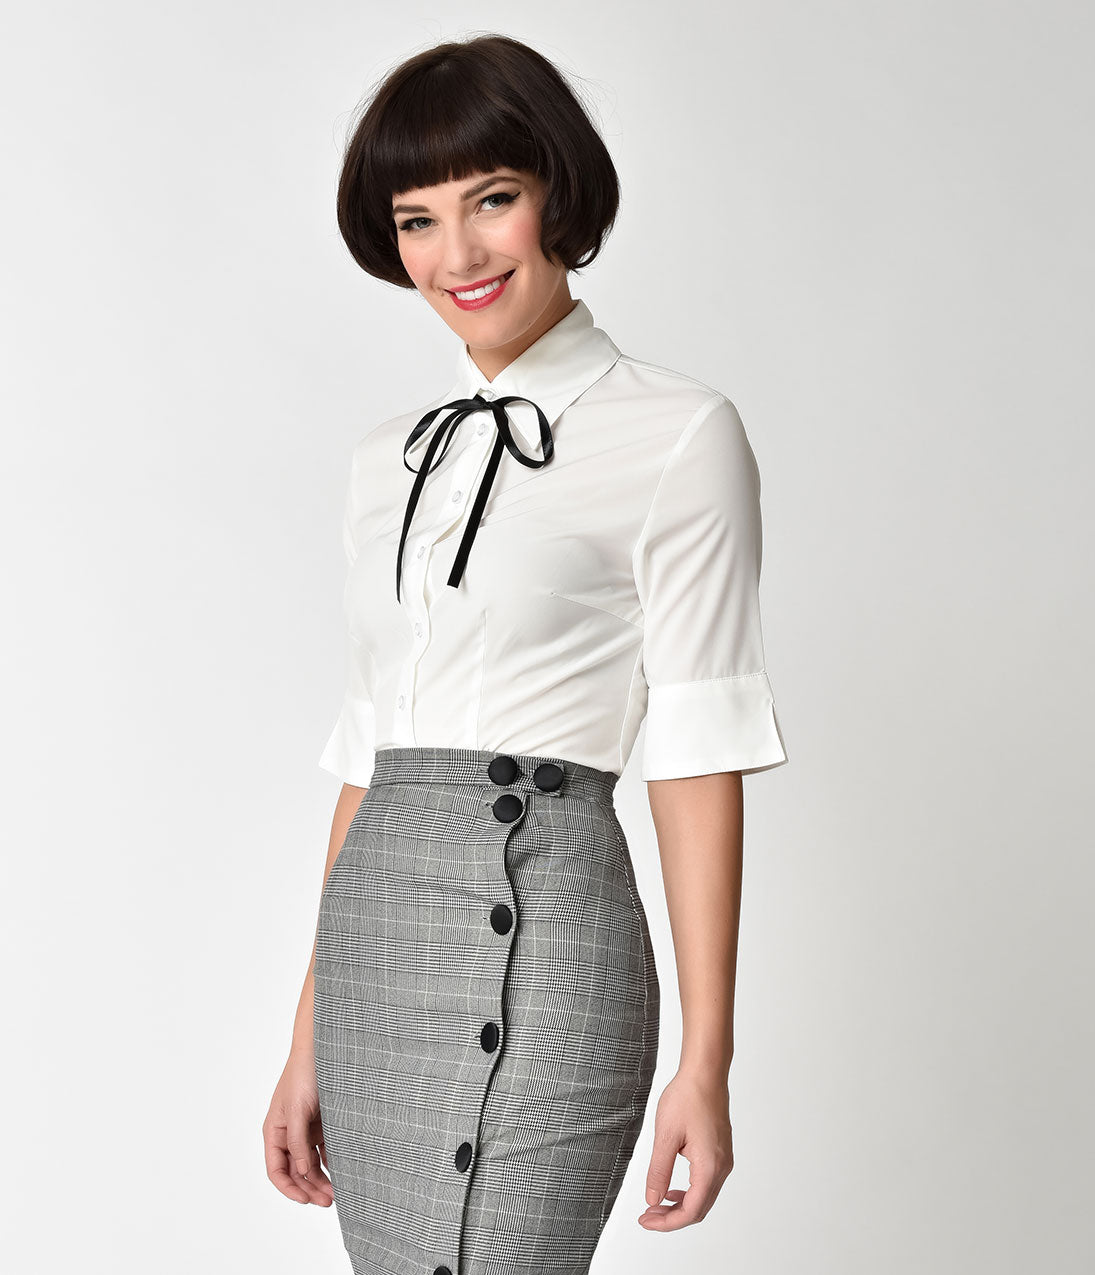 1950s Rockabilly & Pin Up Tops, Blouses, Shirts White  Black Tie Front Lori Ann Button Up Blouse $62.00 AT vintagedancer.com